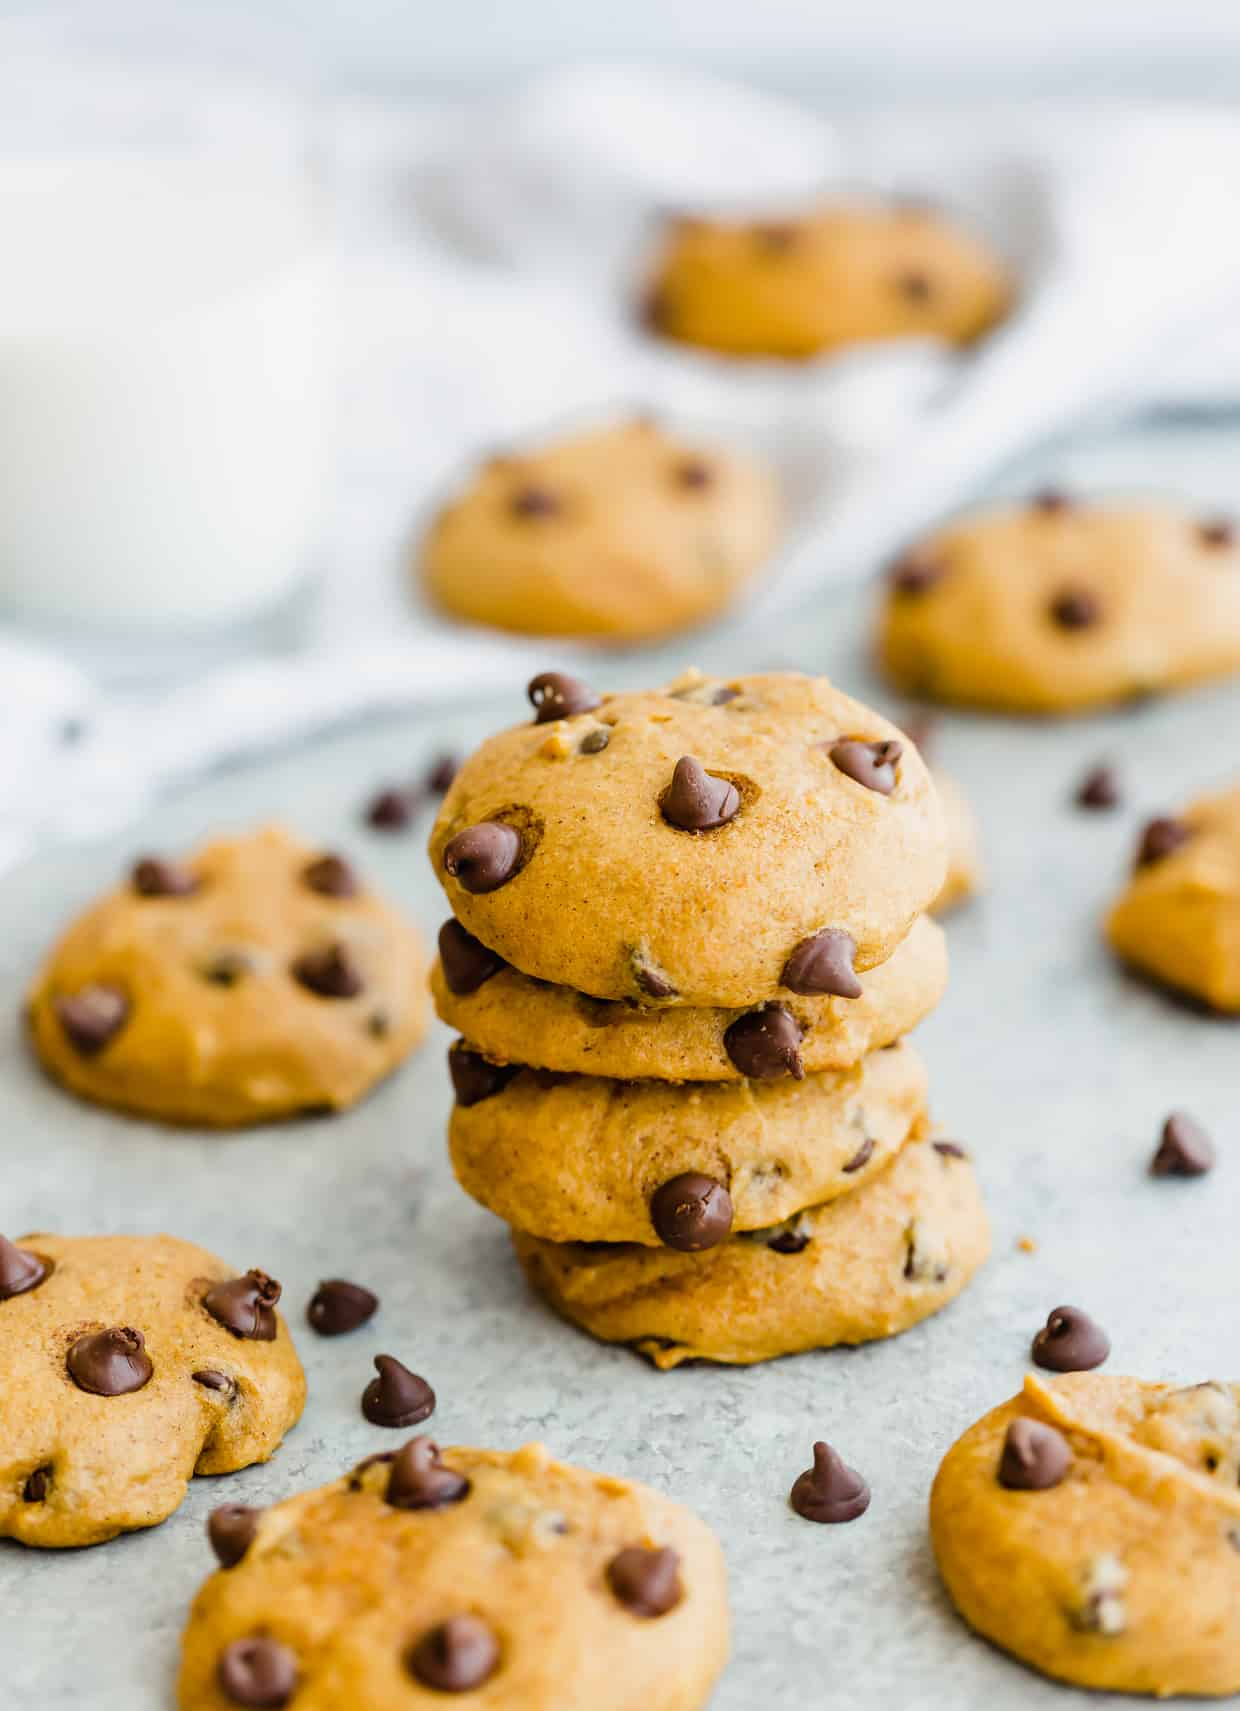 Stack of 4 pumpkin chocolate chip cookies with scattered chocolate chips around the cookies.